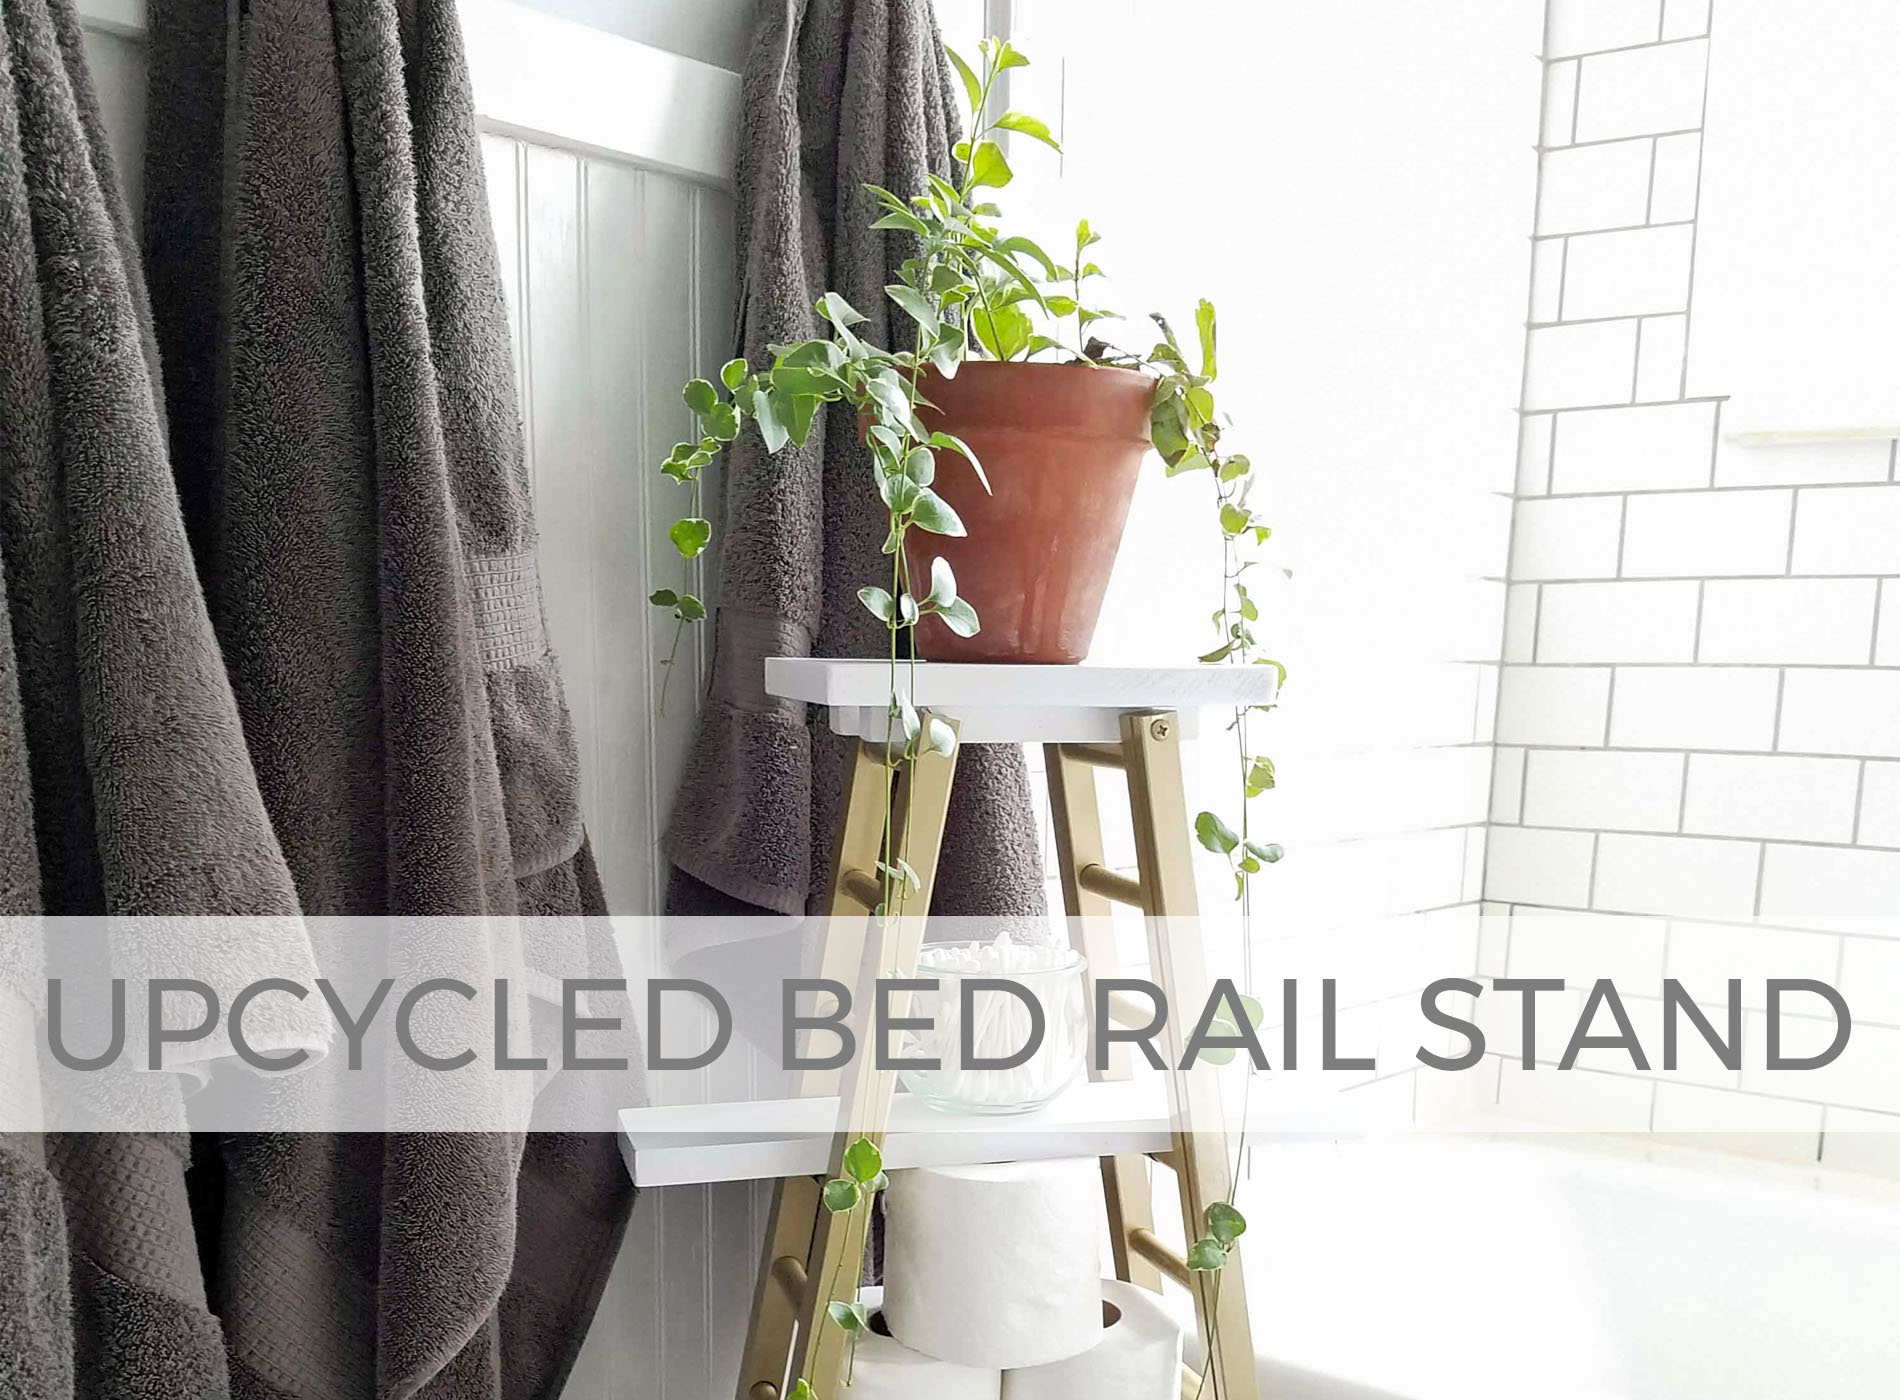 Upcycled Bed Rail Stand by Larissa of Prodigal Pieces | prodigalpieces.com